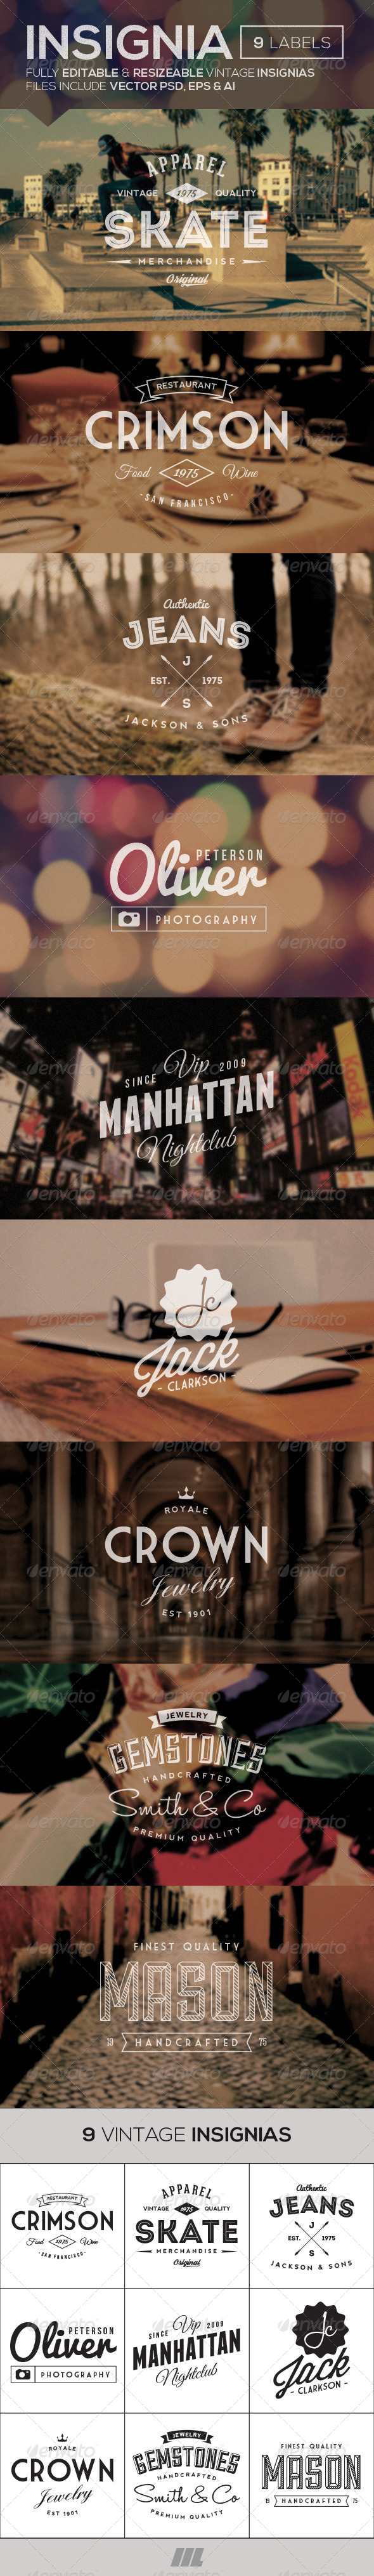 GraphicRiver Vintage Insignias Vol 1 7960367